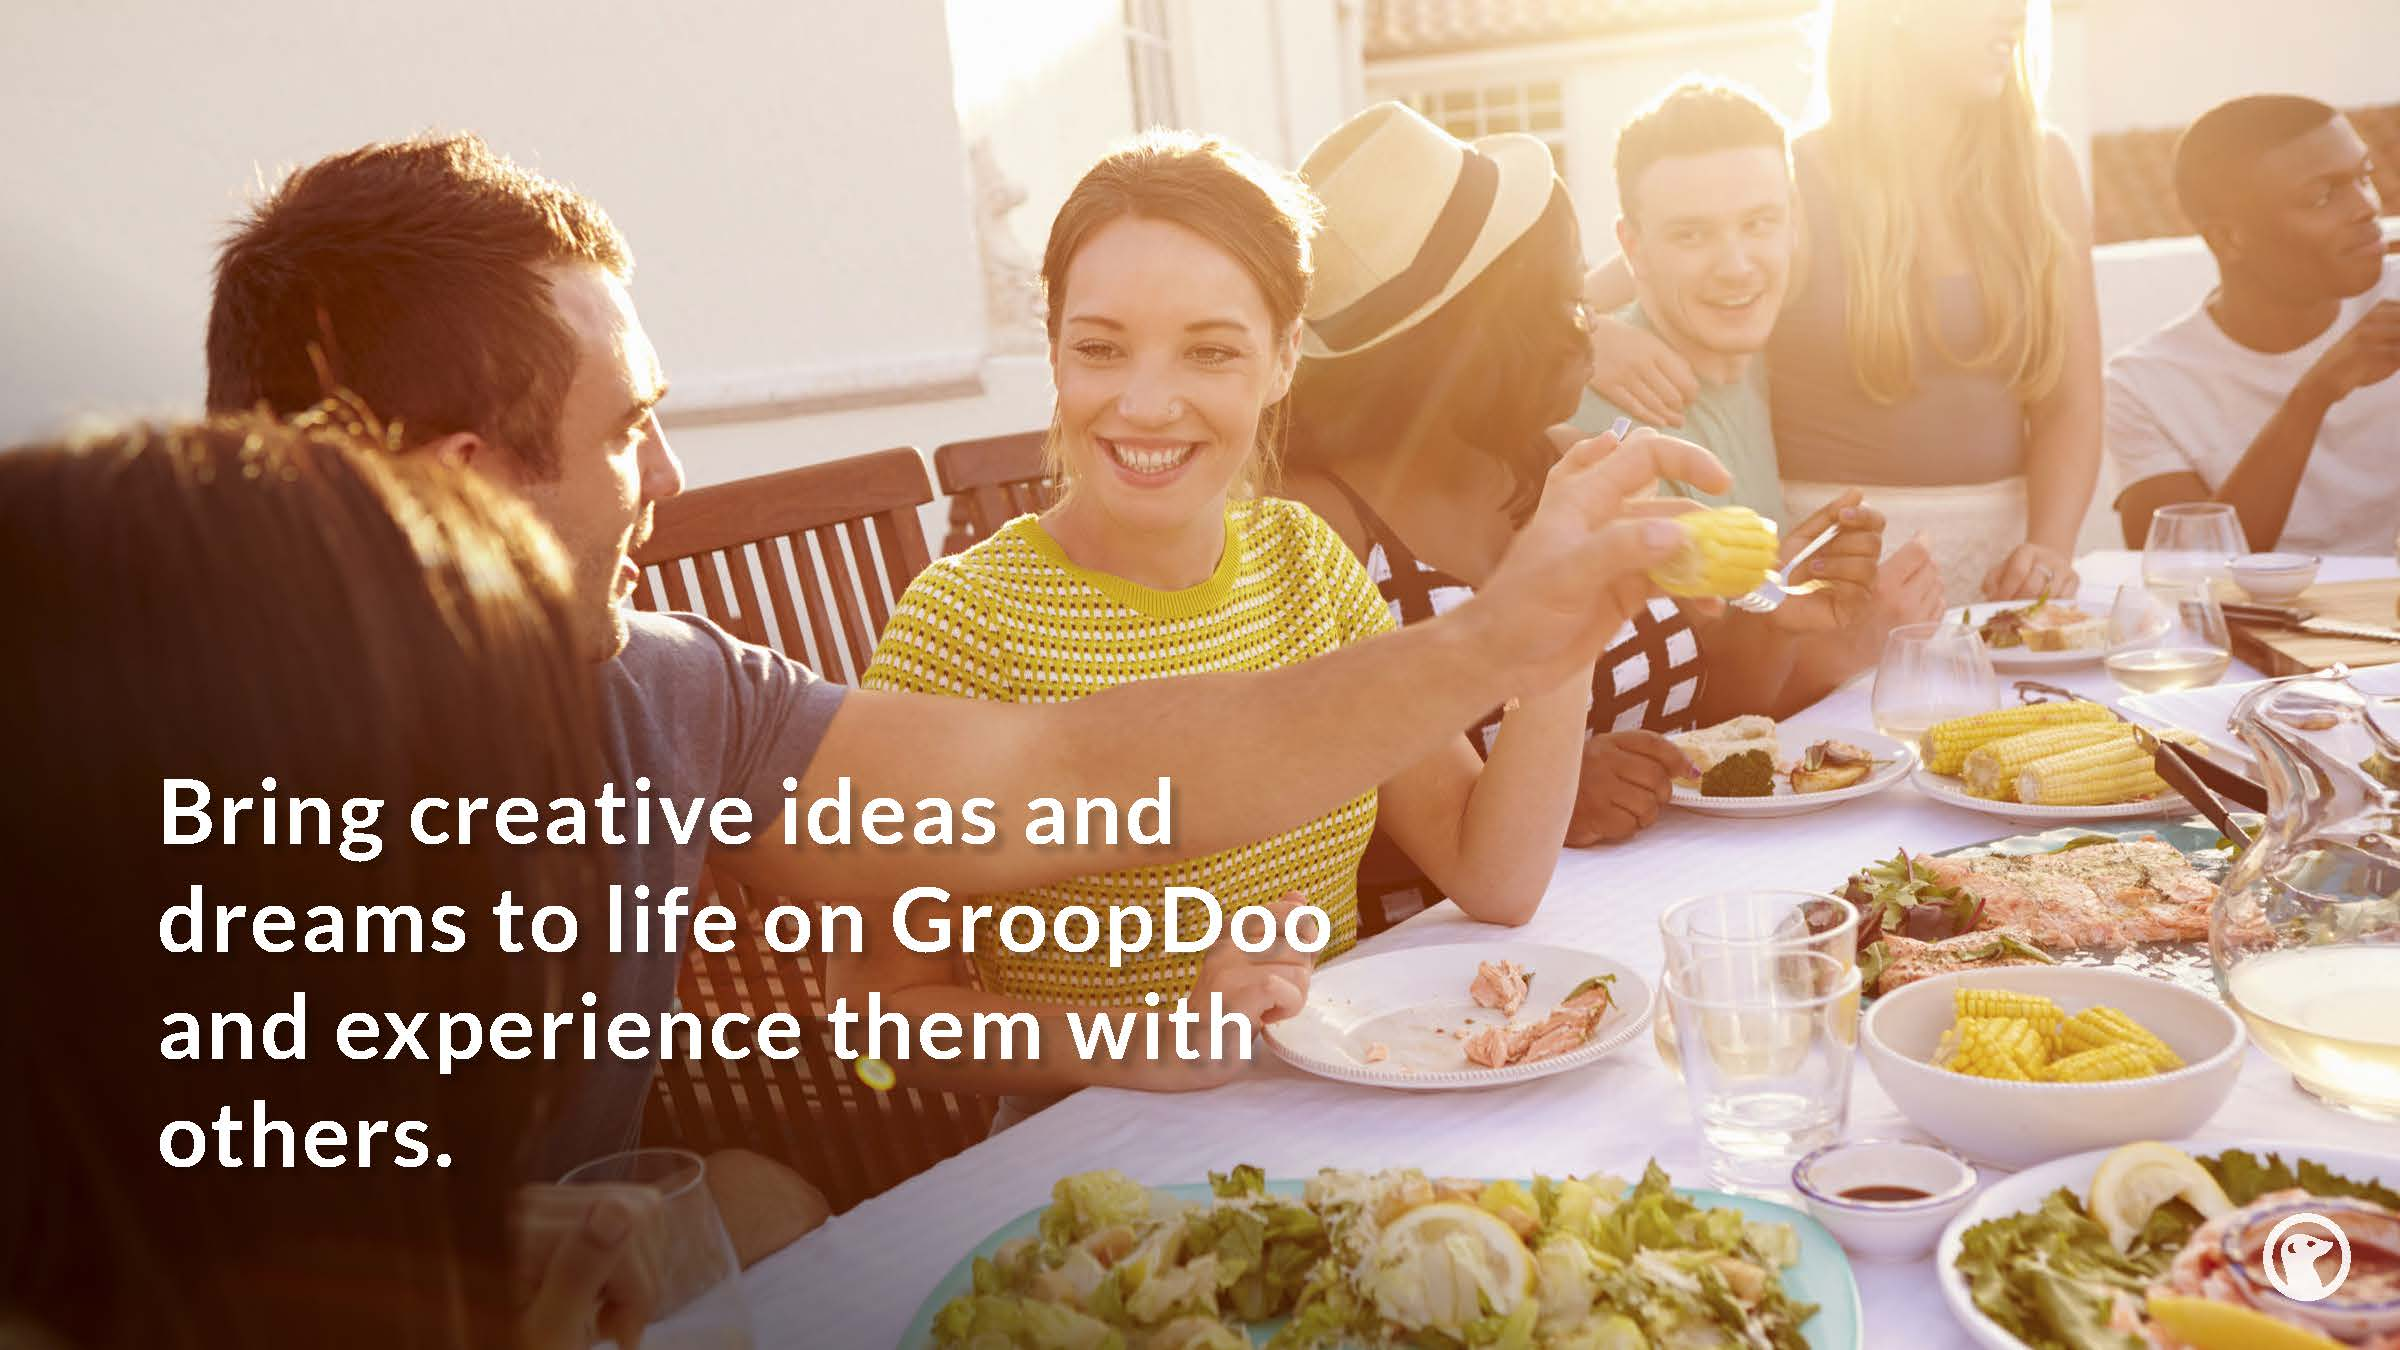 Bring creativite ideas and dreams to life on GroopDoo and experience them with others